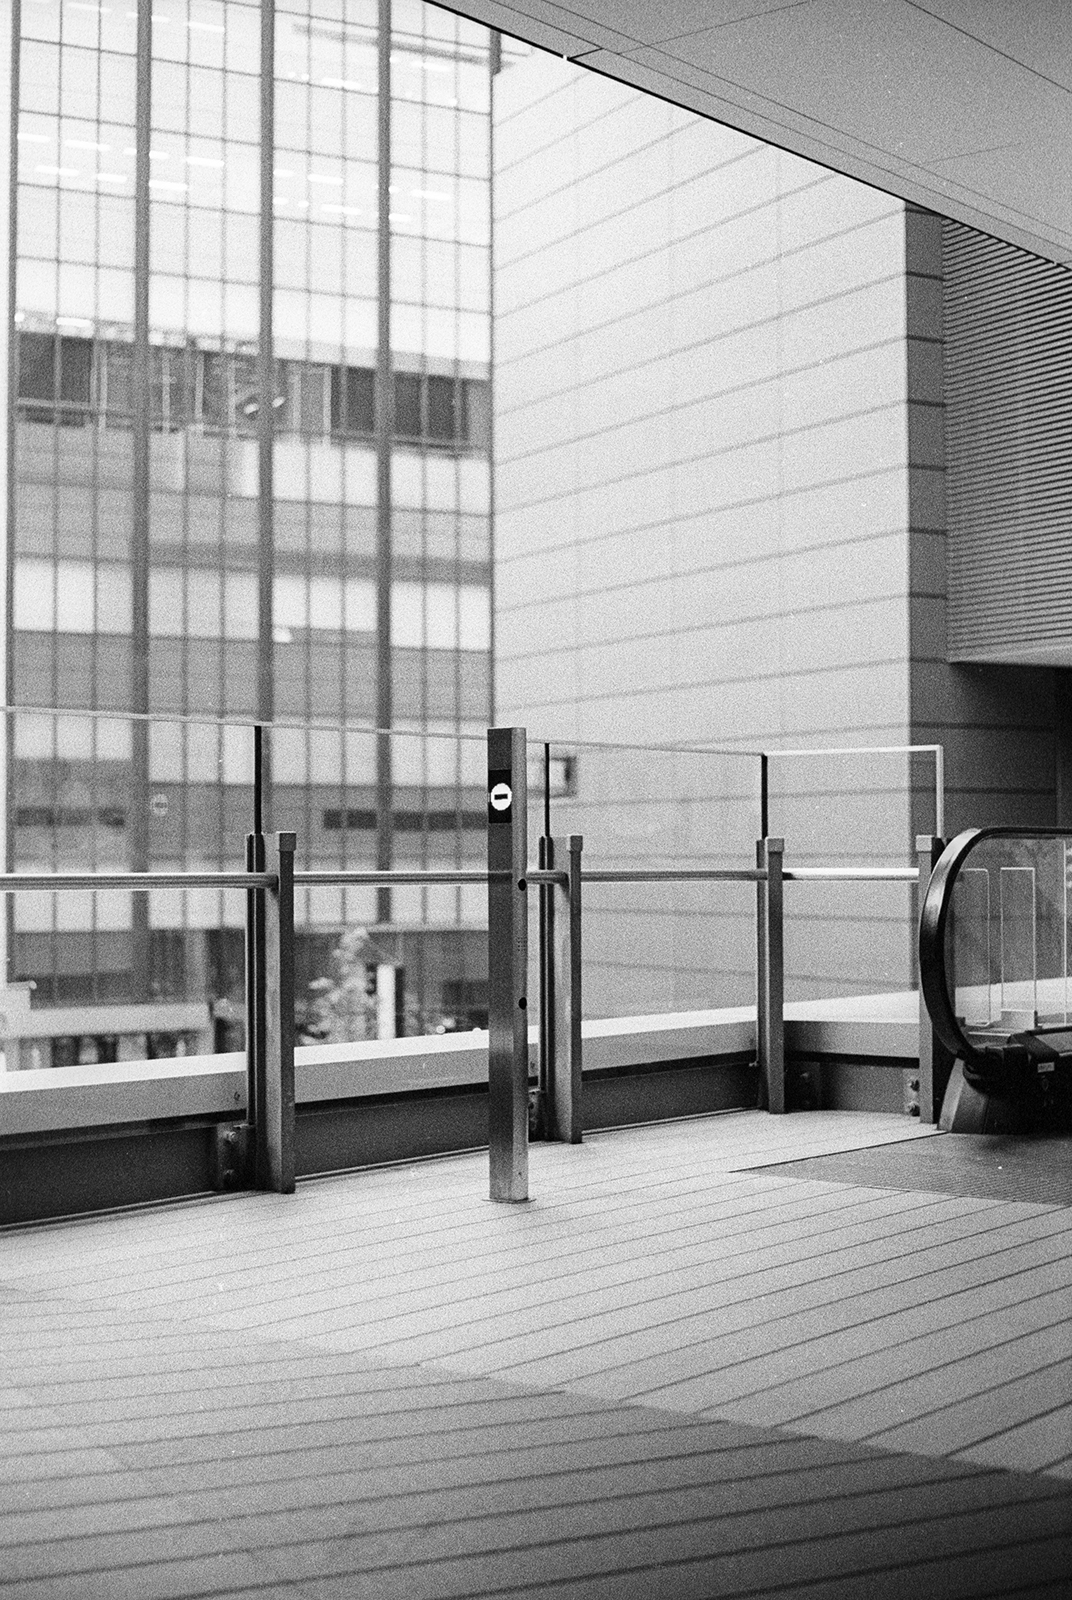 City Scape - Tokyo (기획, 촬영) *35mm Black and White Film